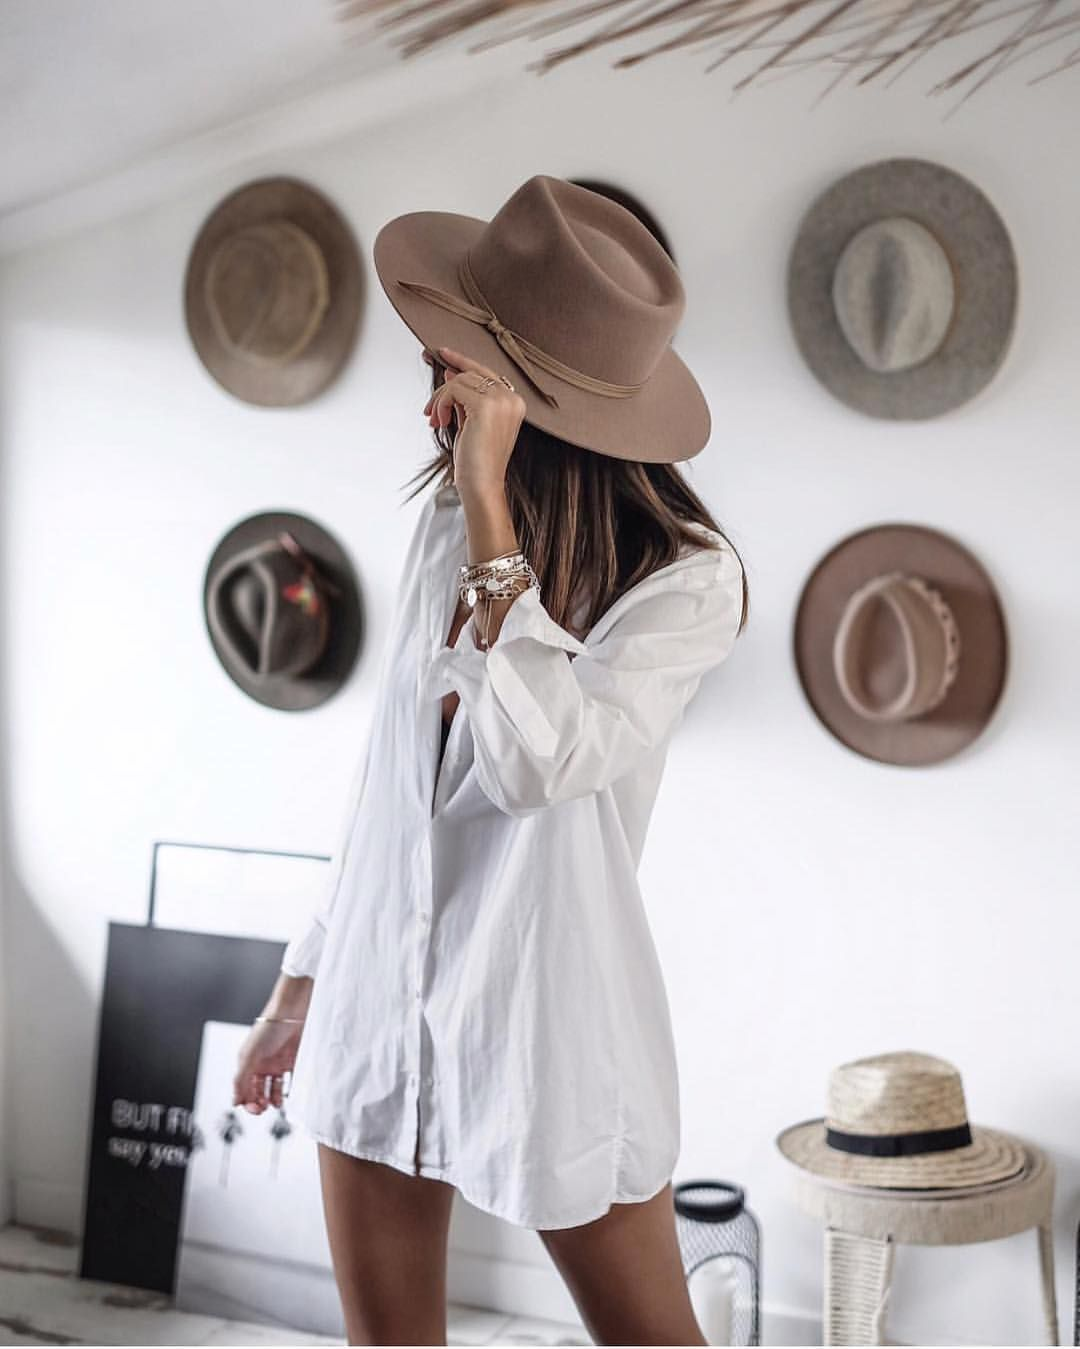 06c77872 3,694 Likes, 20 Comments - Lack of Color Hats (@lackofcoloraus) on Instagram